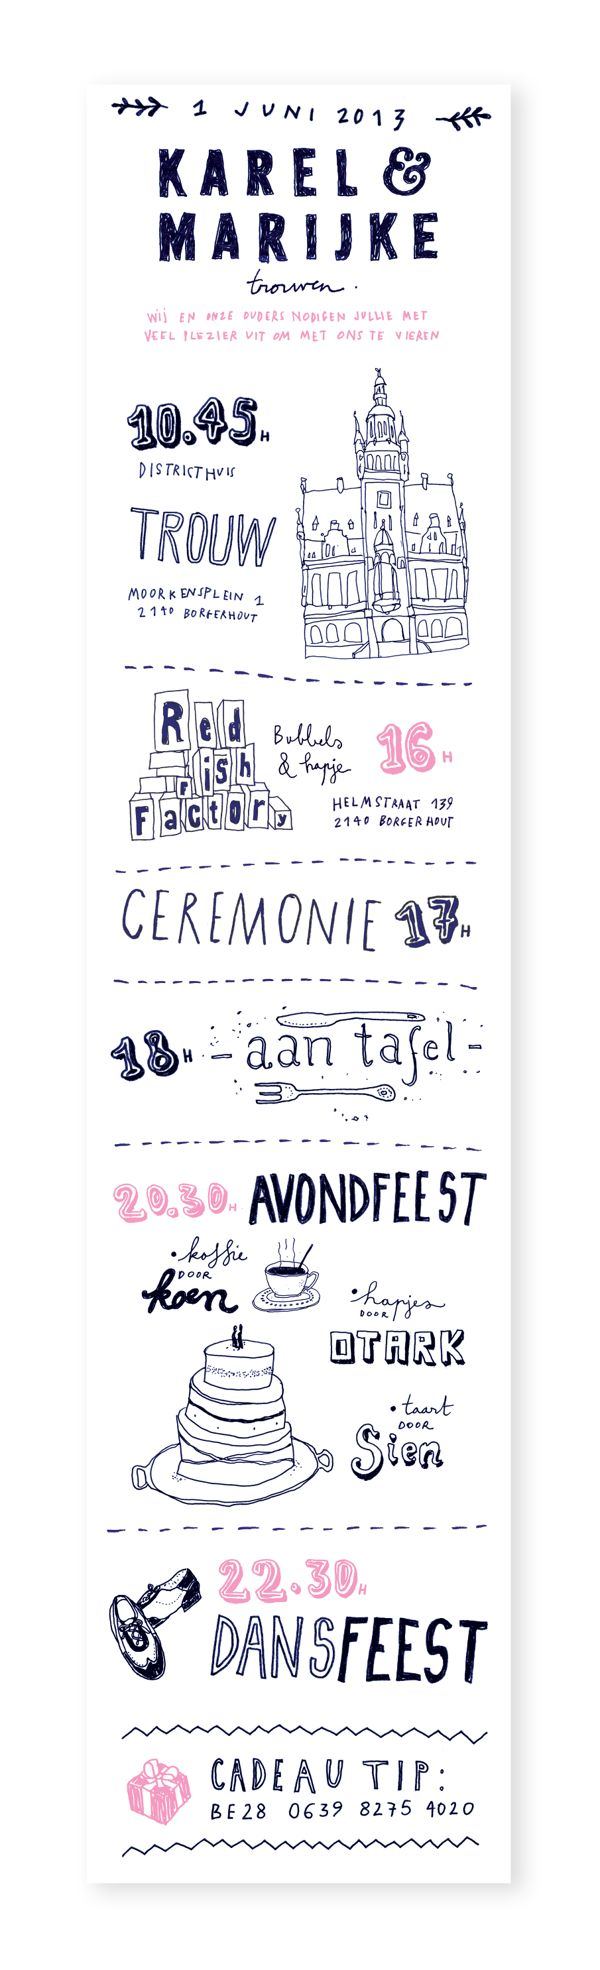 Wedding Invitation Karel and Marijke by Anne Manteleers, via Behance